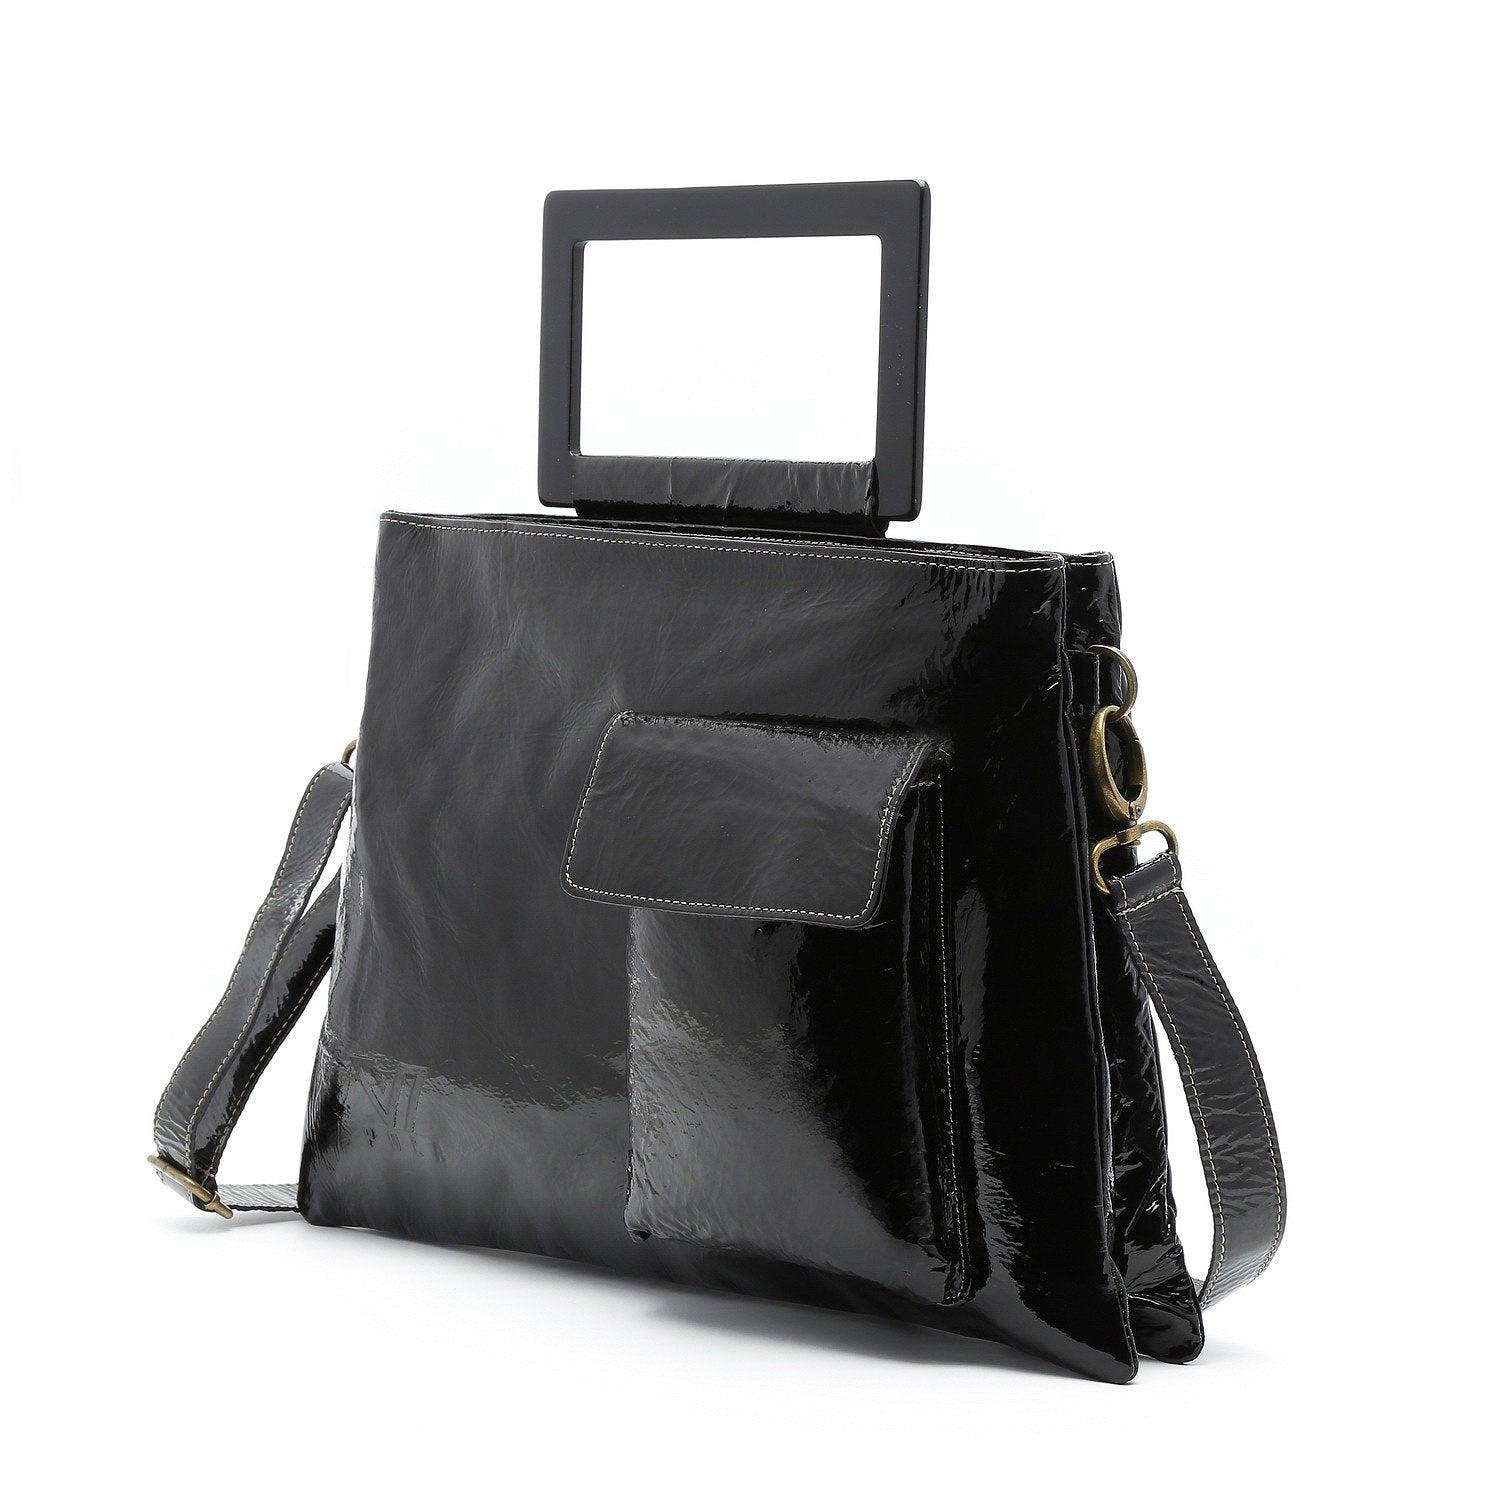 9faf907bf03 Black Leather Bag, Women Handbag, Laptop Bag, Leather Handbag, Shoulder Bag,